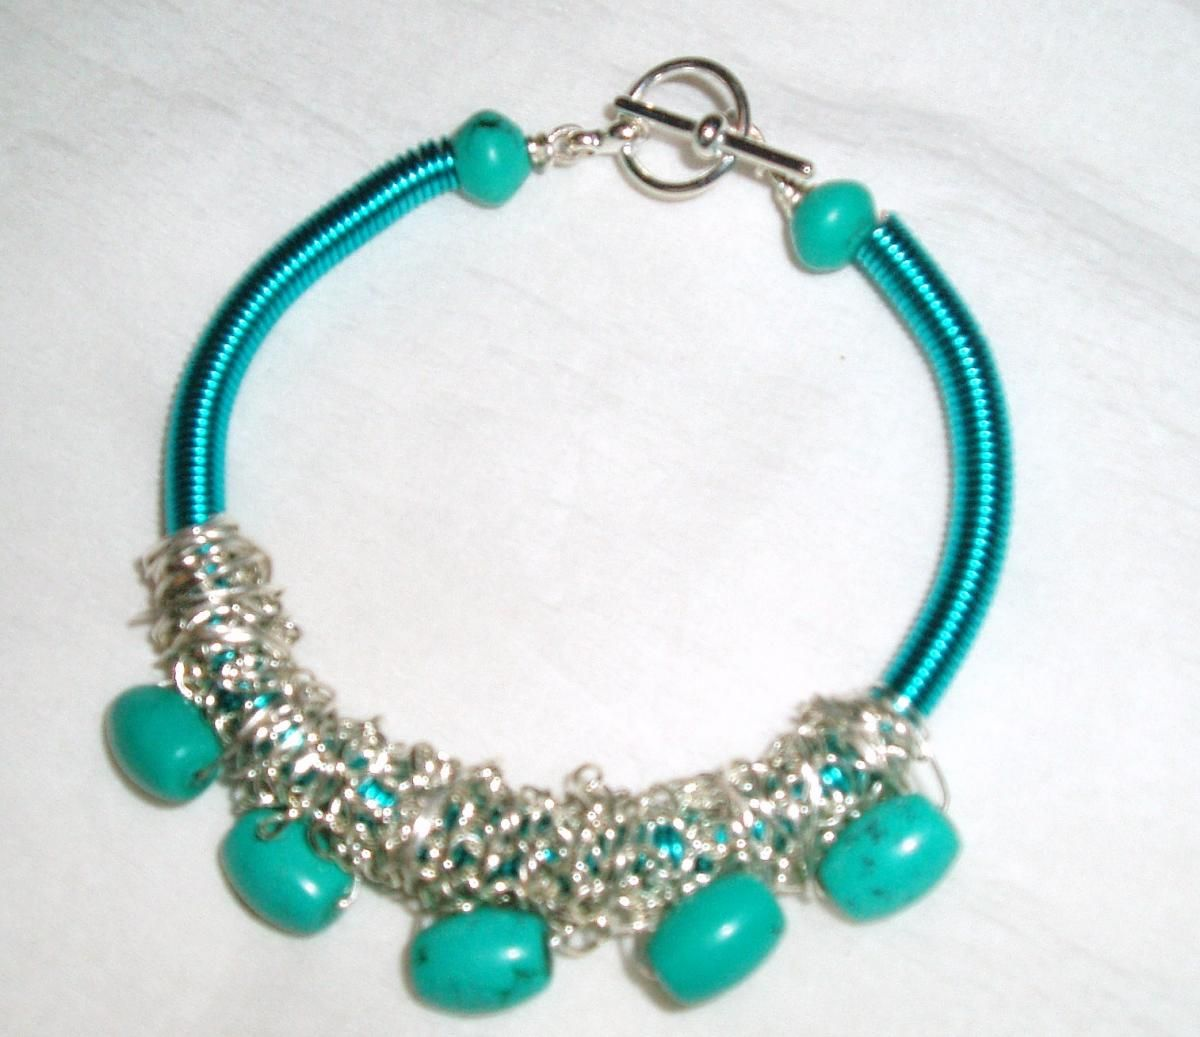 Turquoise Gemstone and Turquoise Wire Coil Bracelet Handmade ...